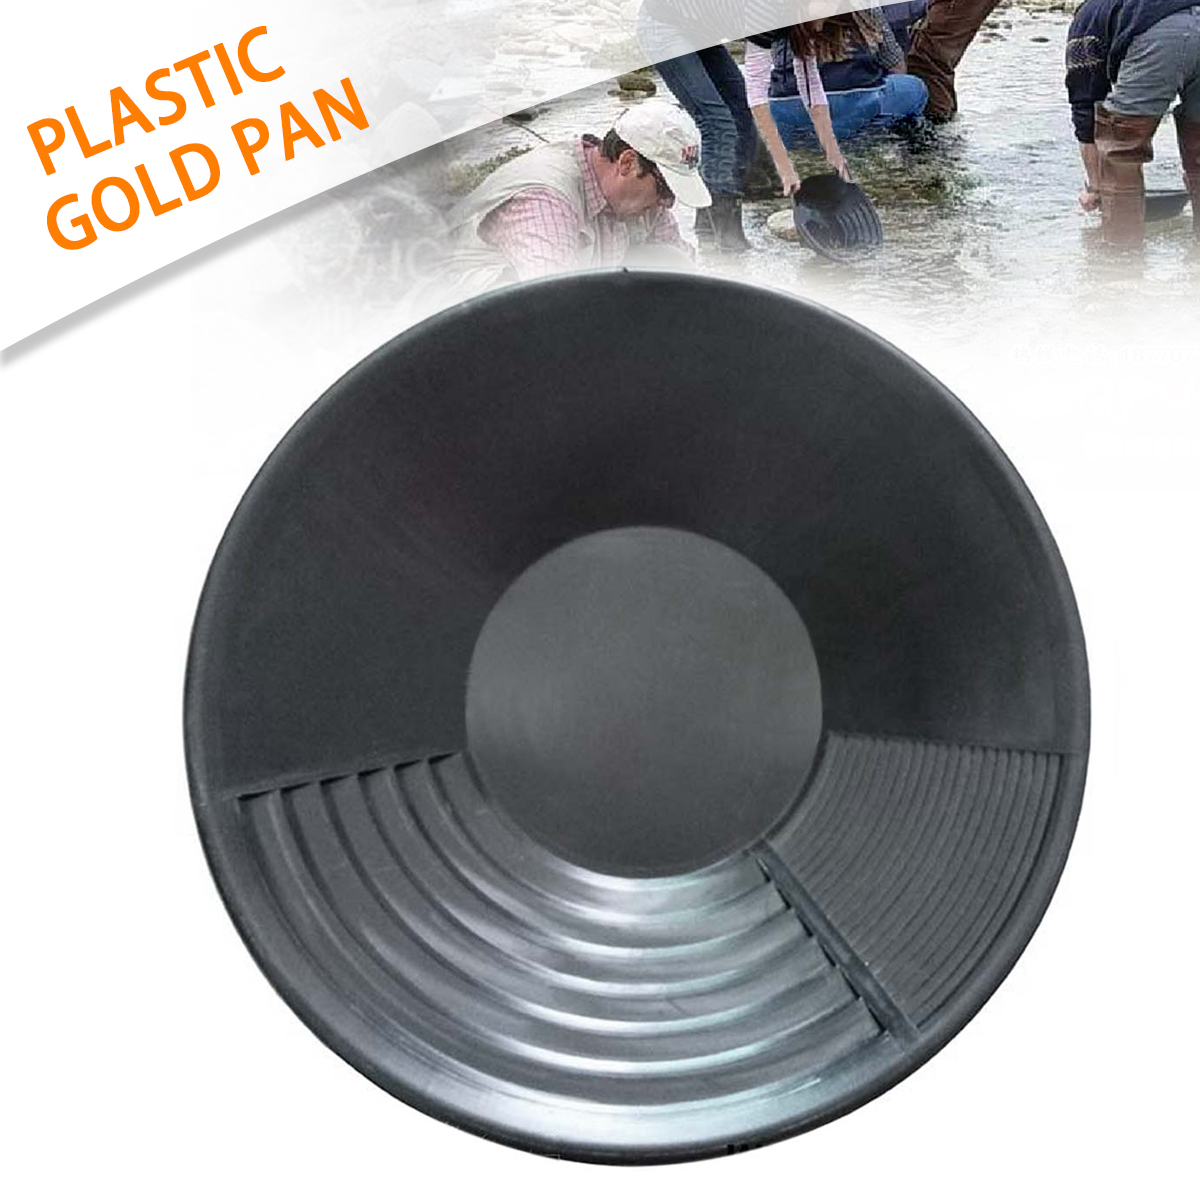 Black Plastic Gold Pan Basin Nugget Mining Dredging Prospecting for Sand Gold Mining Manual Wash Gold Panning EquipmentBlack Plastic Gold Pan Basin Nugget Mining Dredging Prospecting for Sand Gold Mining Manual Wash Gold Panning Equipment